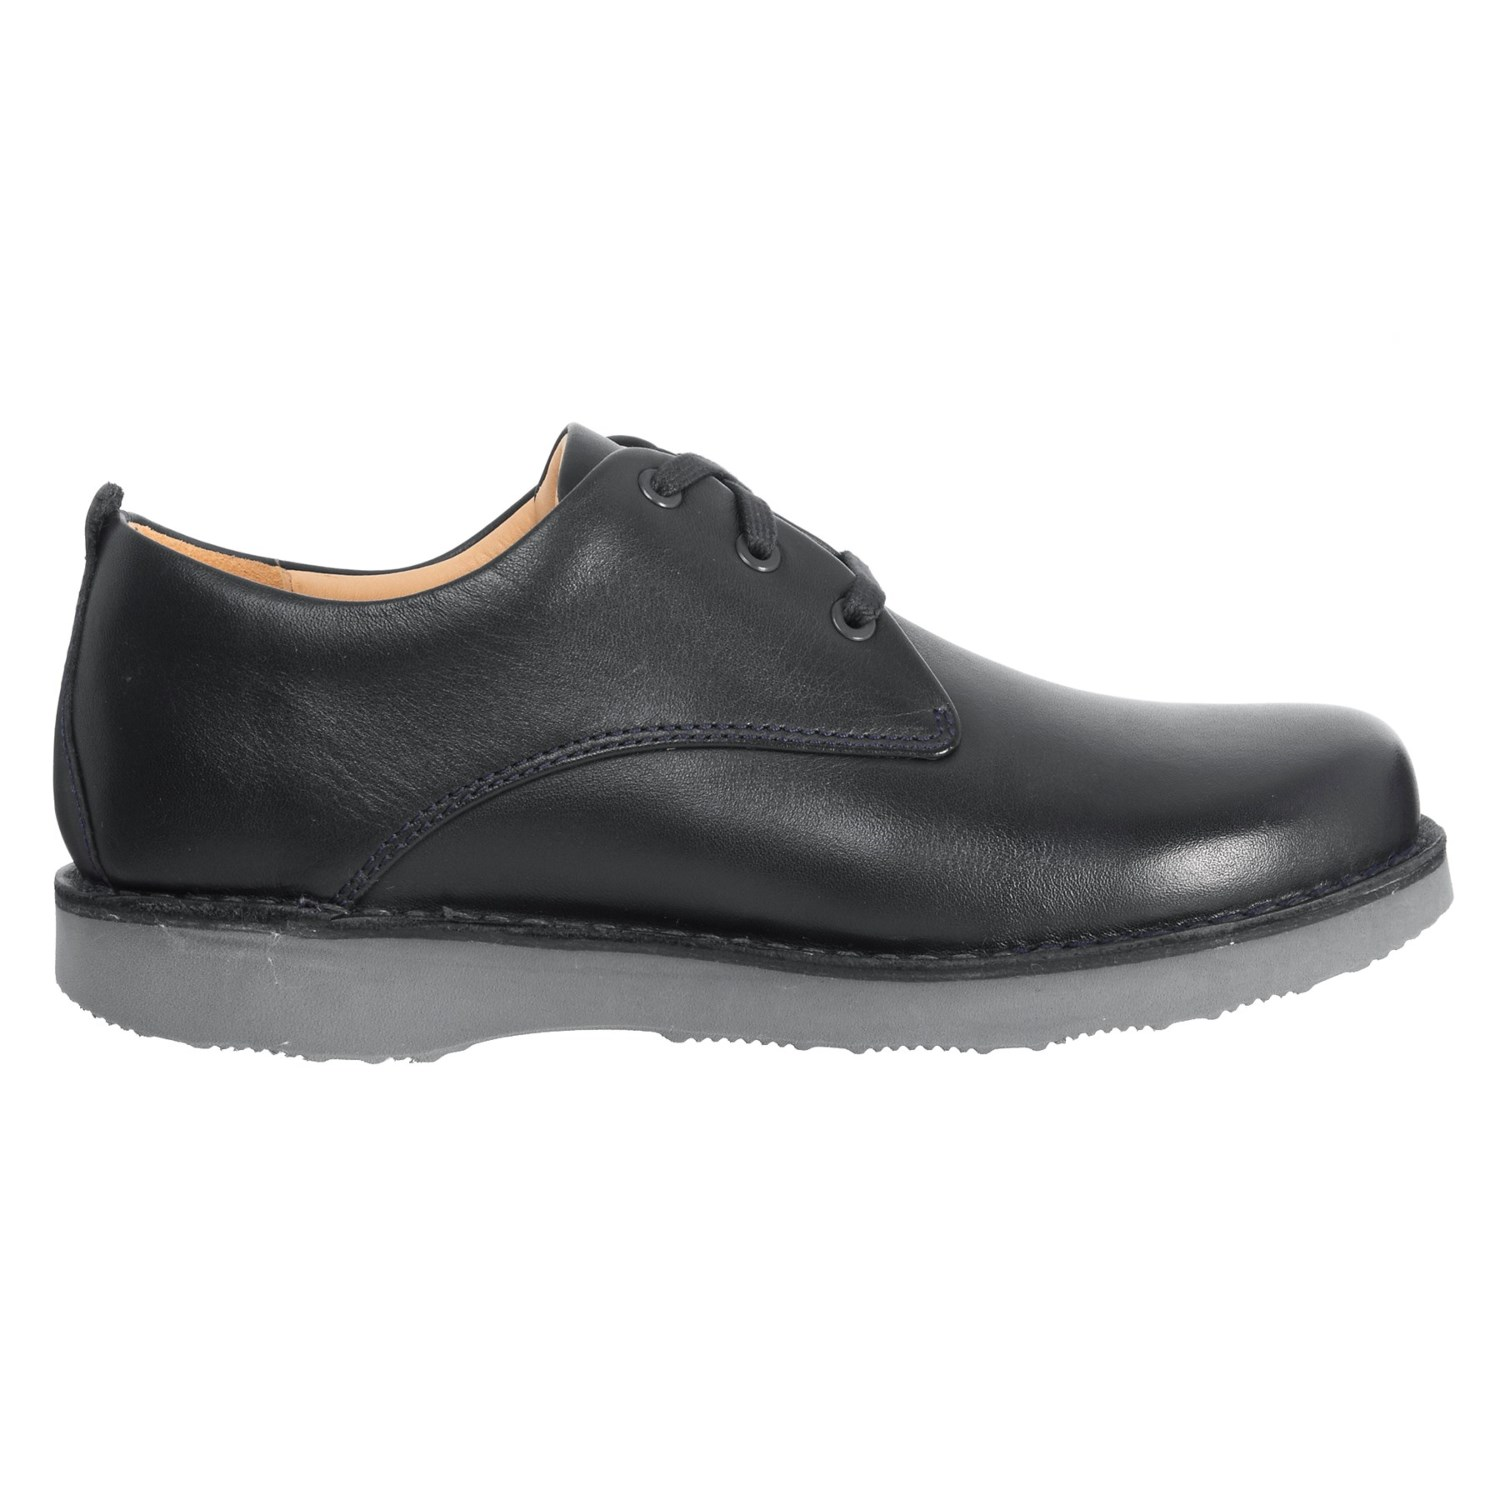 e8491bfa1fd Samuel Hubbard Made in Portugal Hubbard Free Oxford Shoes - Leather (For Men )